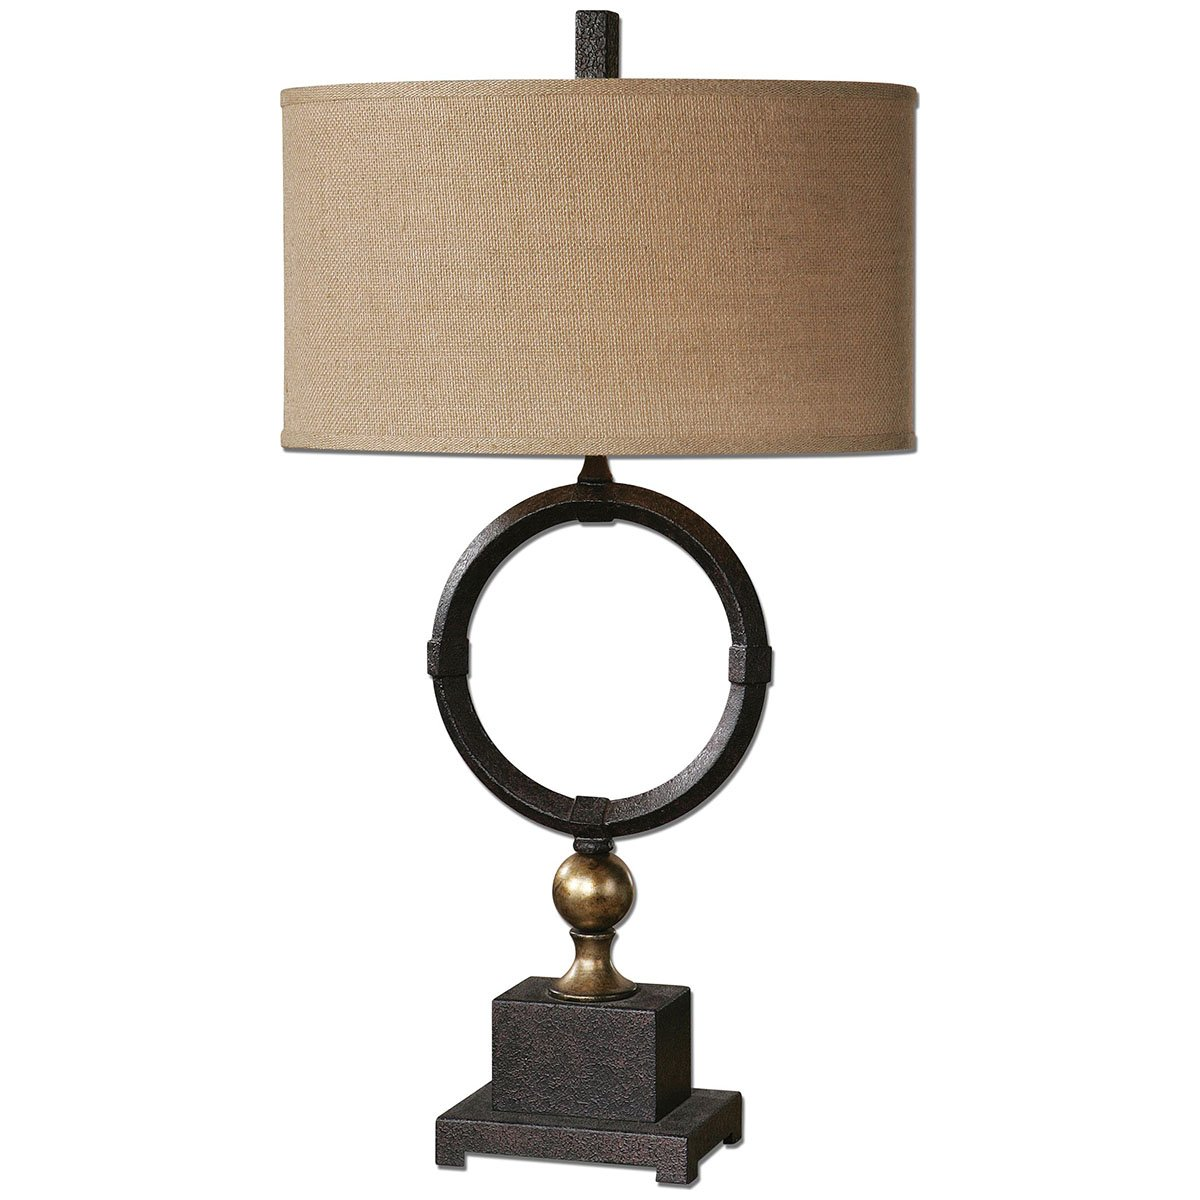 Amazon.com: Uttermost 26296 1 Pueblo Circle Table Lamp, Black: Home U0026  Kitchen